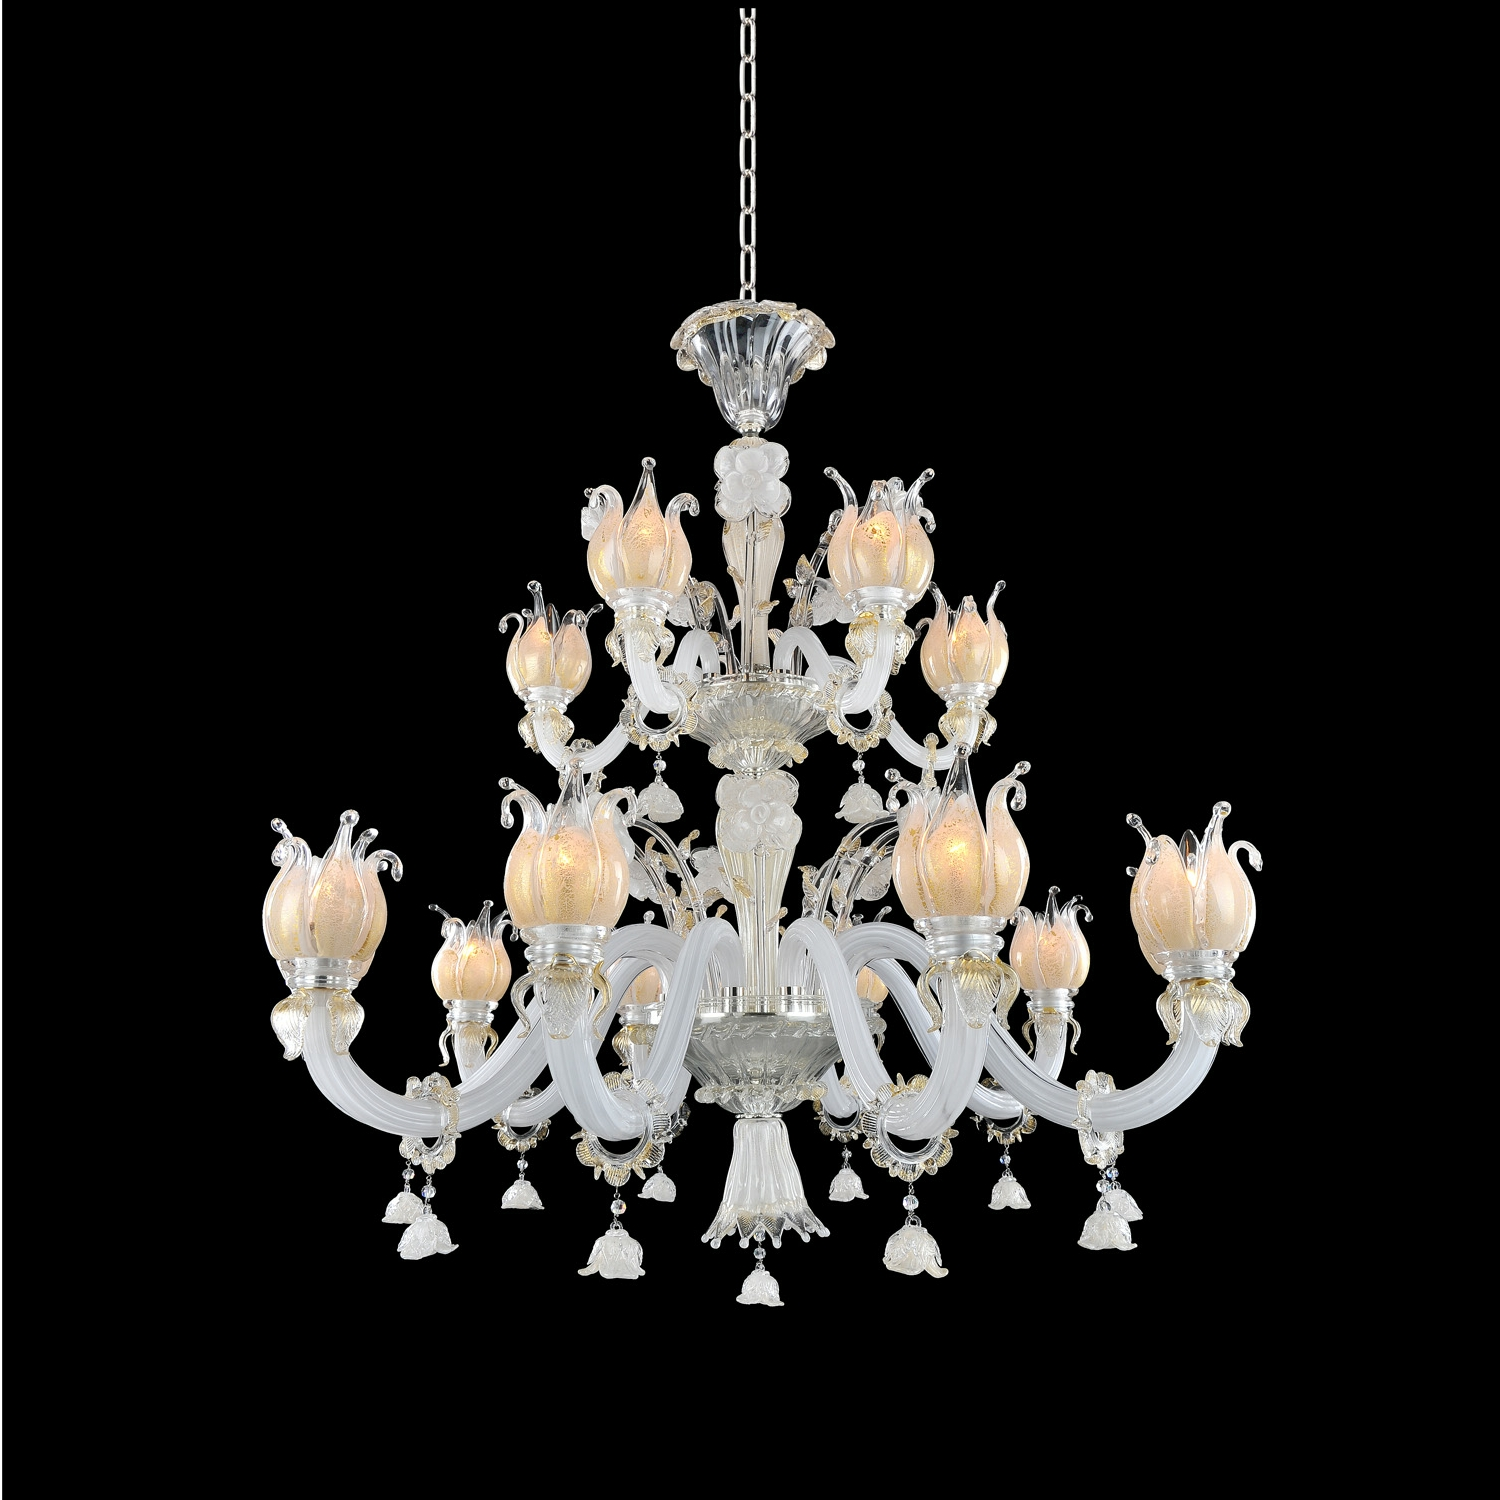 Artemisia 15 Light Chandelier